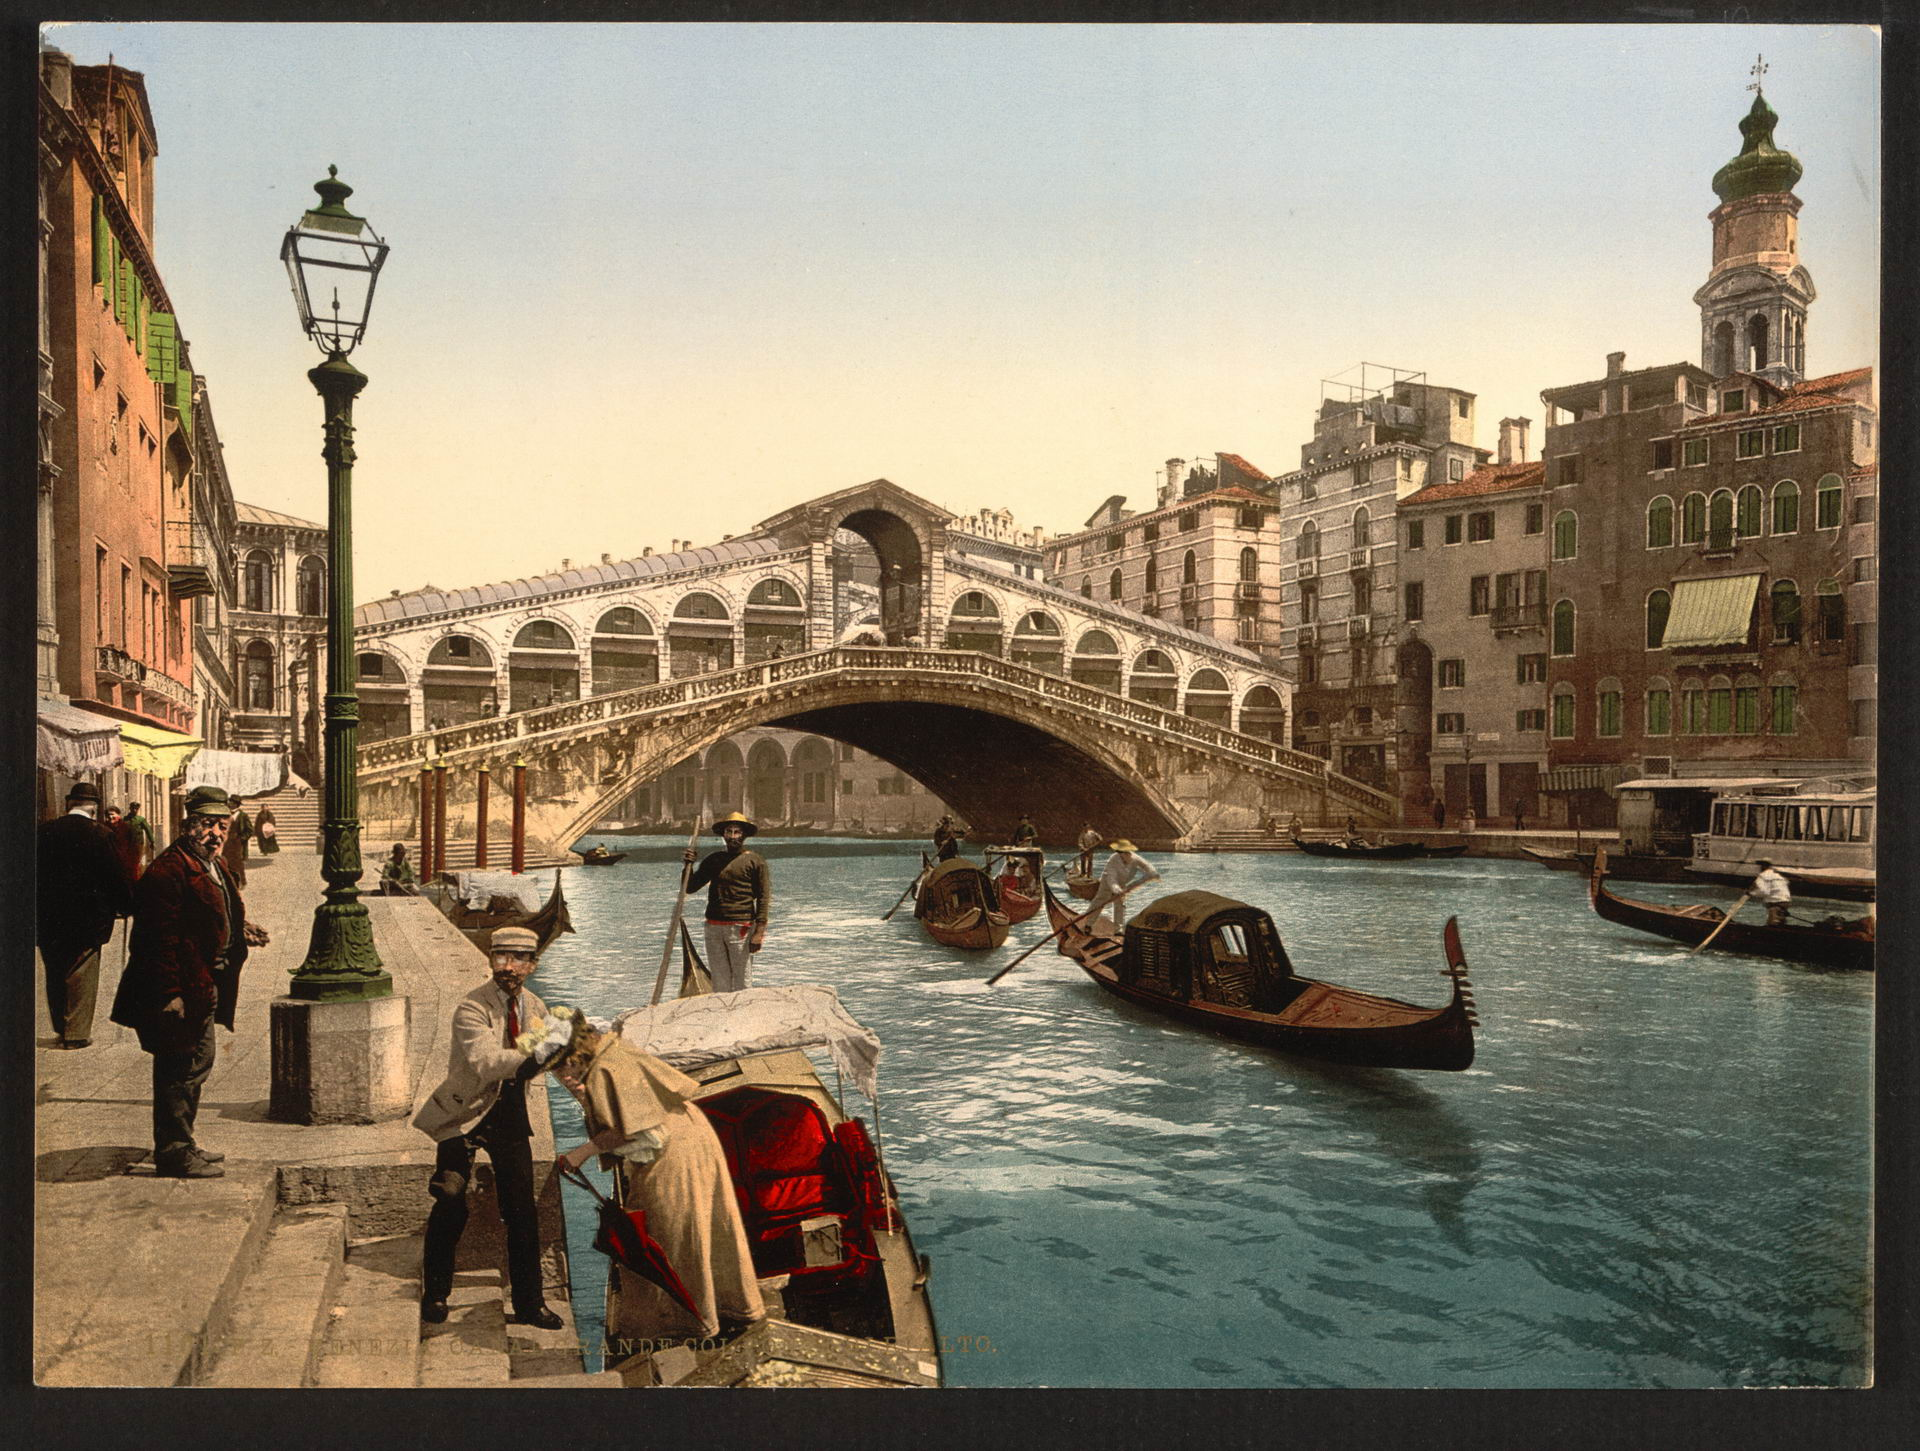 59 Colored Retro Photographs Of Italy At The End Of The 19th Century